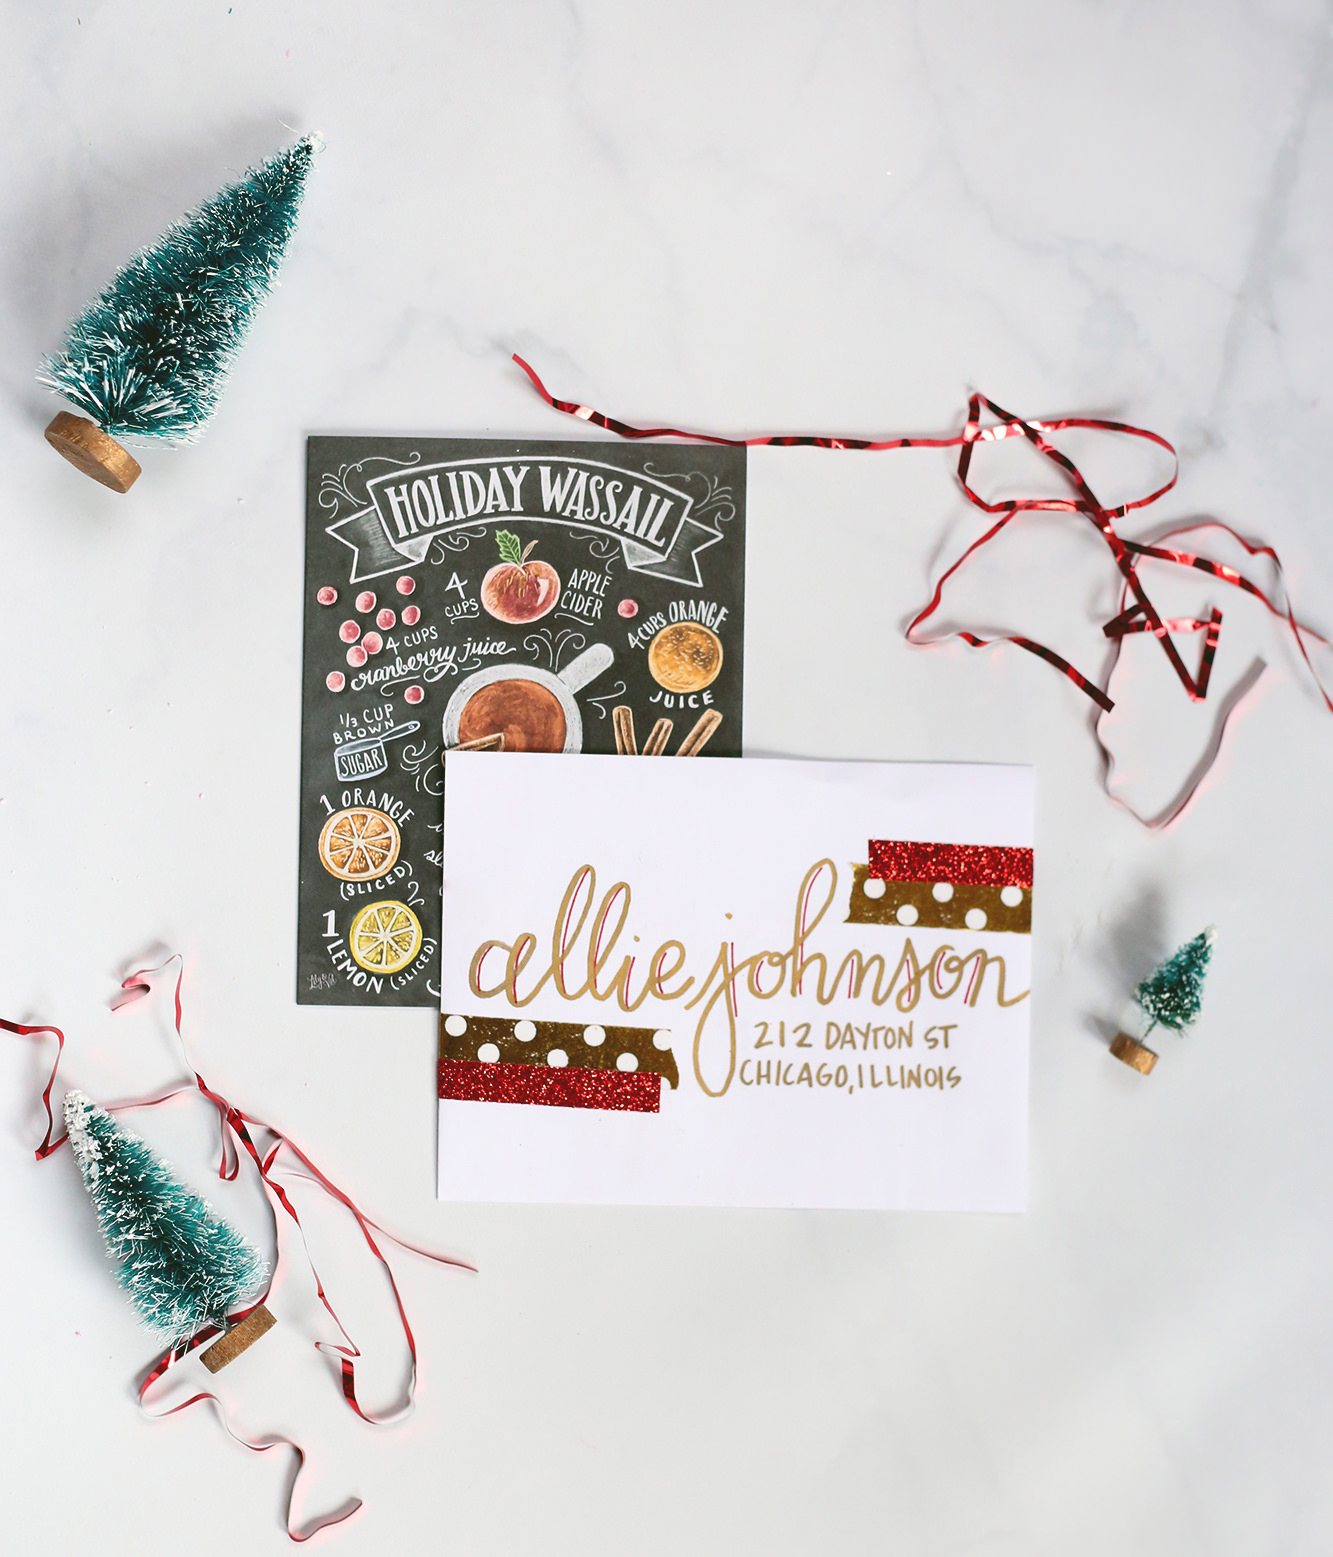 Christmas-inspired envelopes that are perfect for sending holiday wishes!